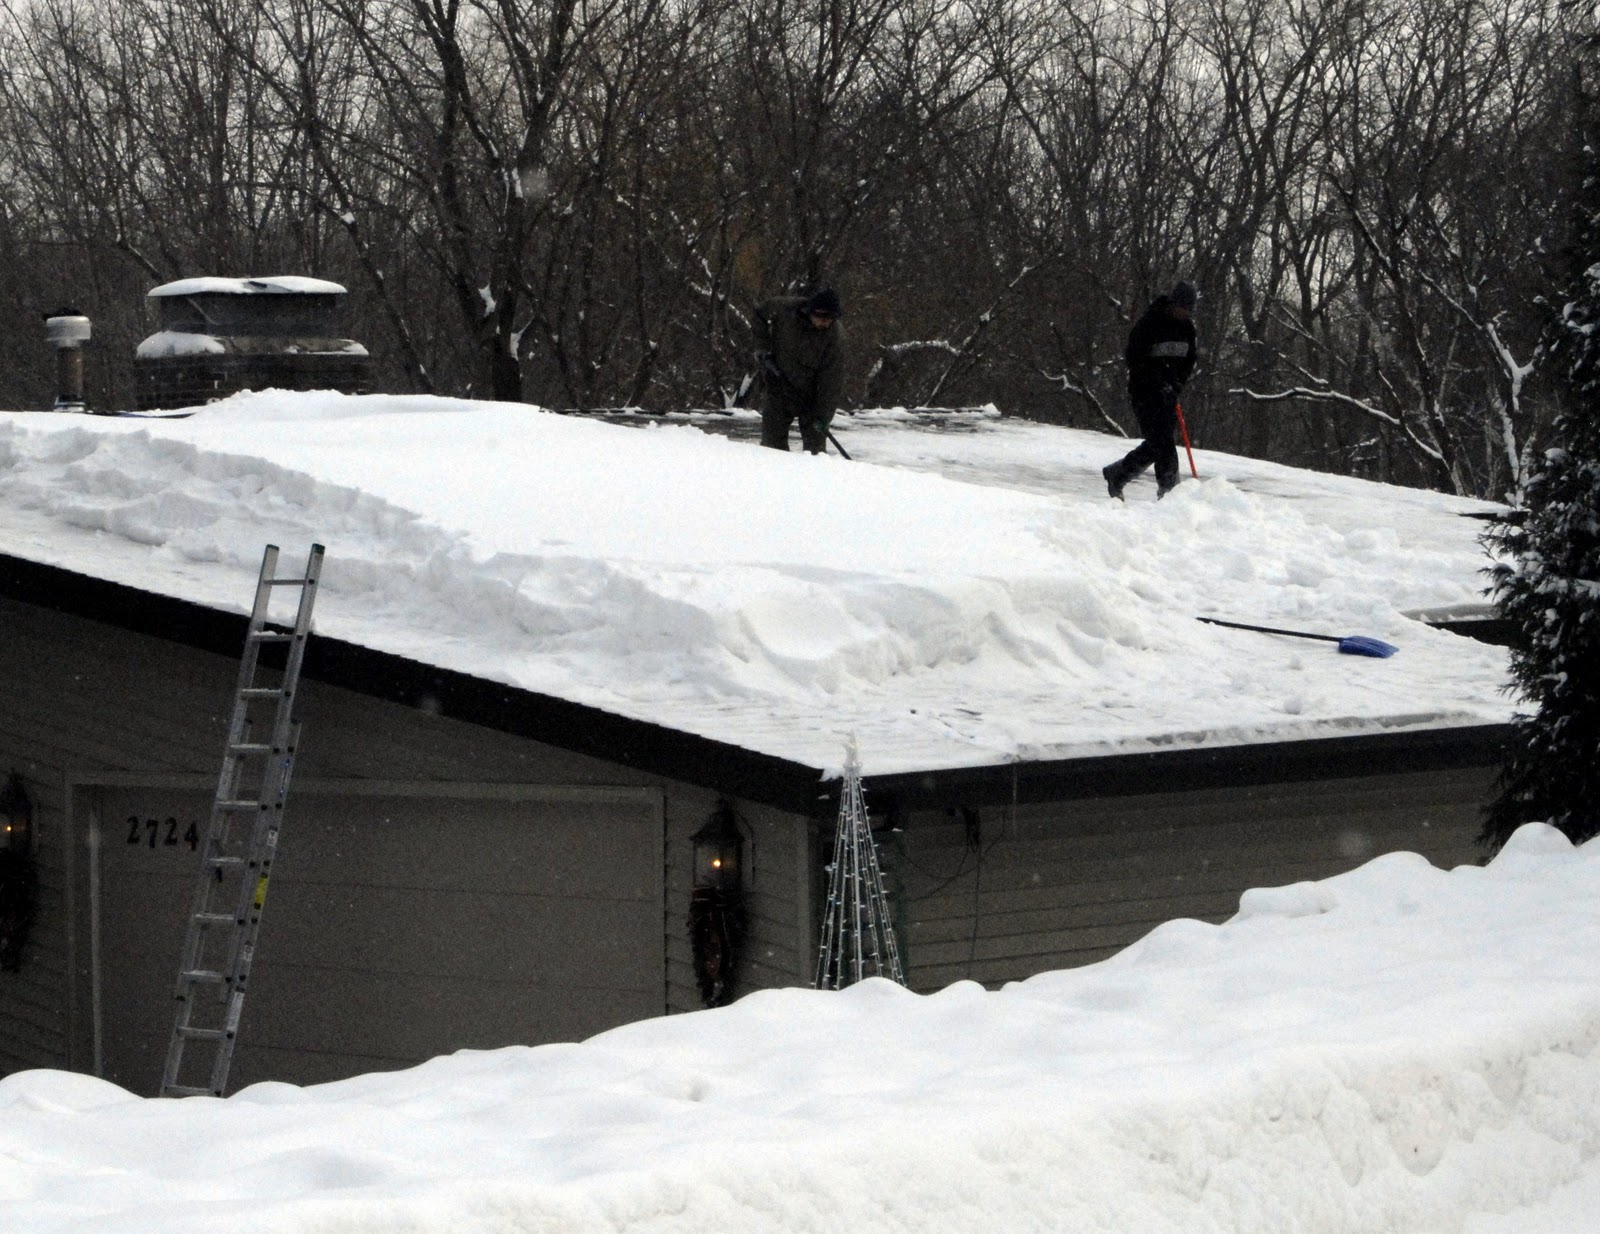 I Quietly Chuckled To Myself When I Saw This House That Had A Sign  Advertising Roof Snow Removal (lf), That Still Appeared To Have A  Considerable Amount Of ...